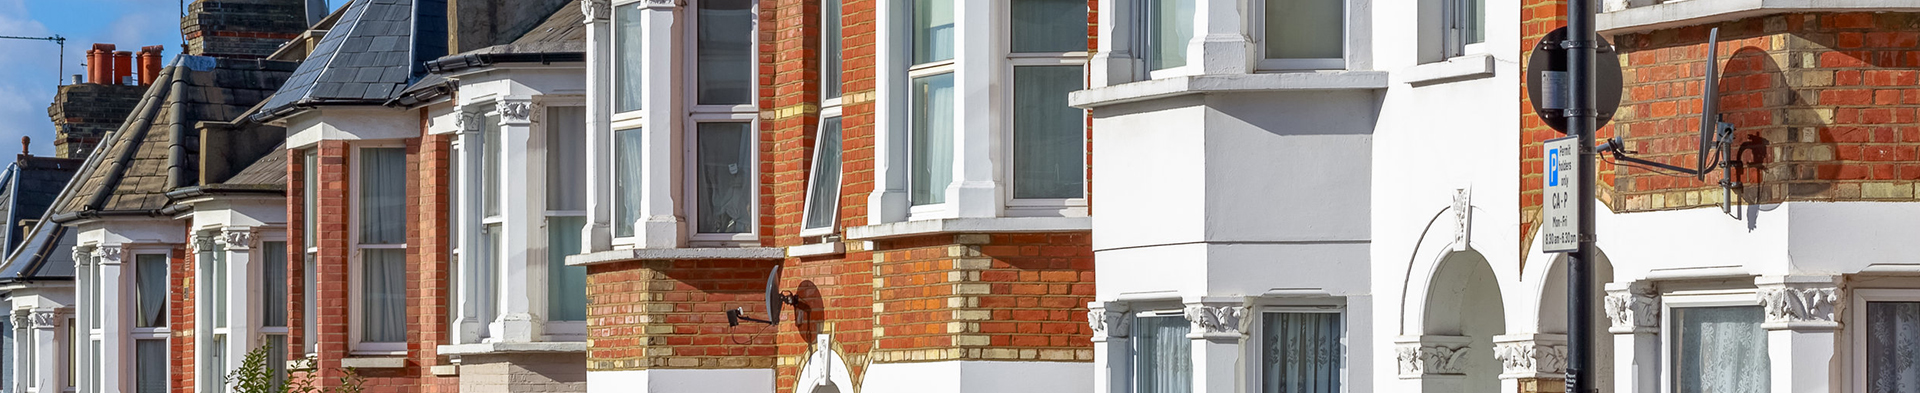 Residential Property Evictions Services UK